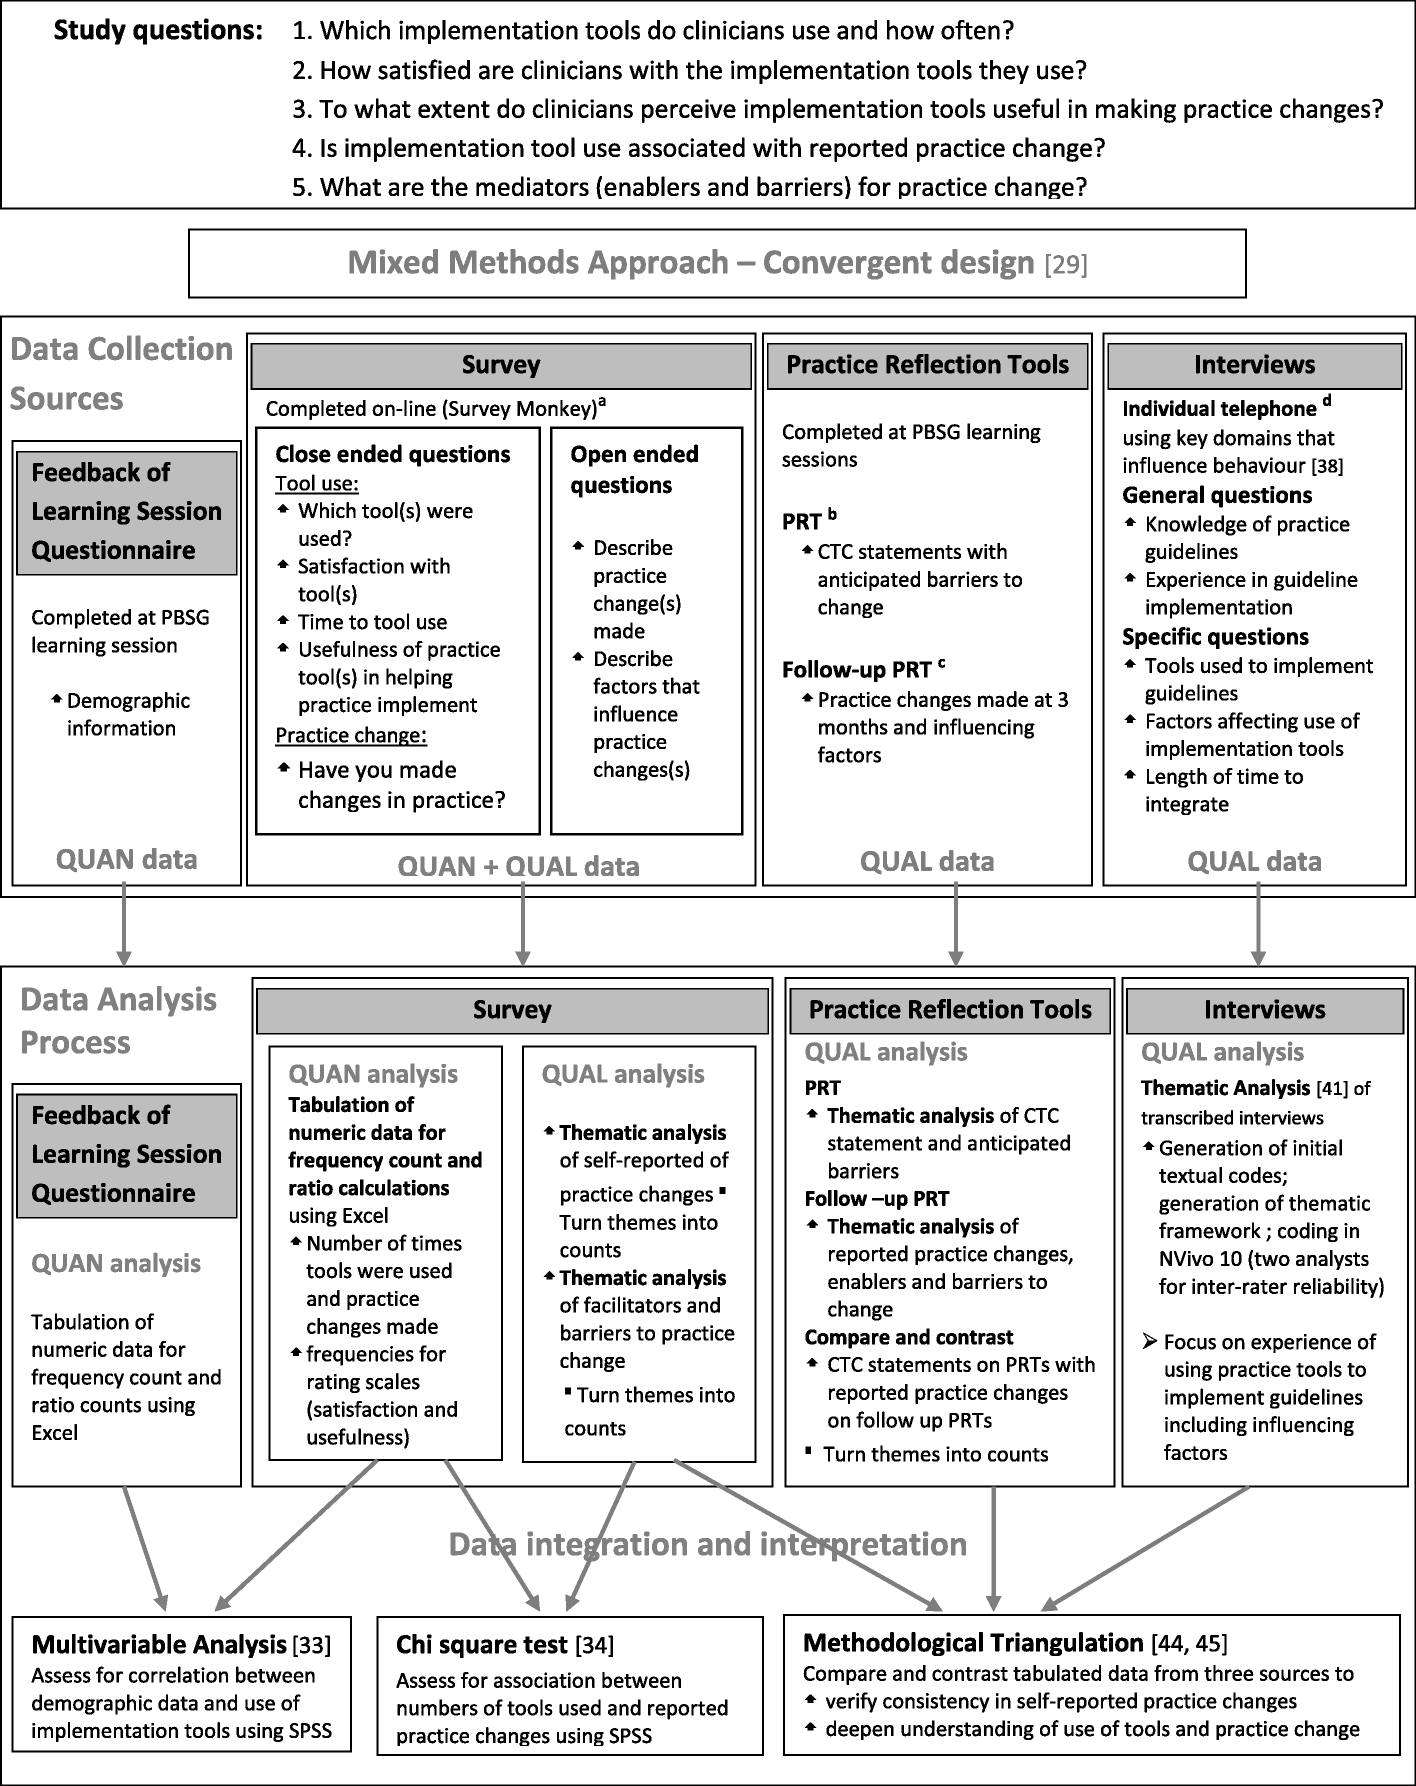 Why Theres Disagreement Over Screening >> How Do Clinicians Use Implementation Tools To Apply Breast Cancer